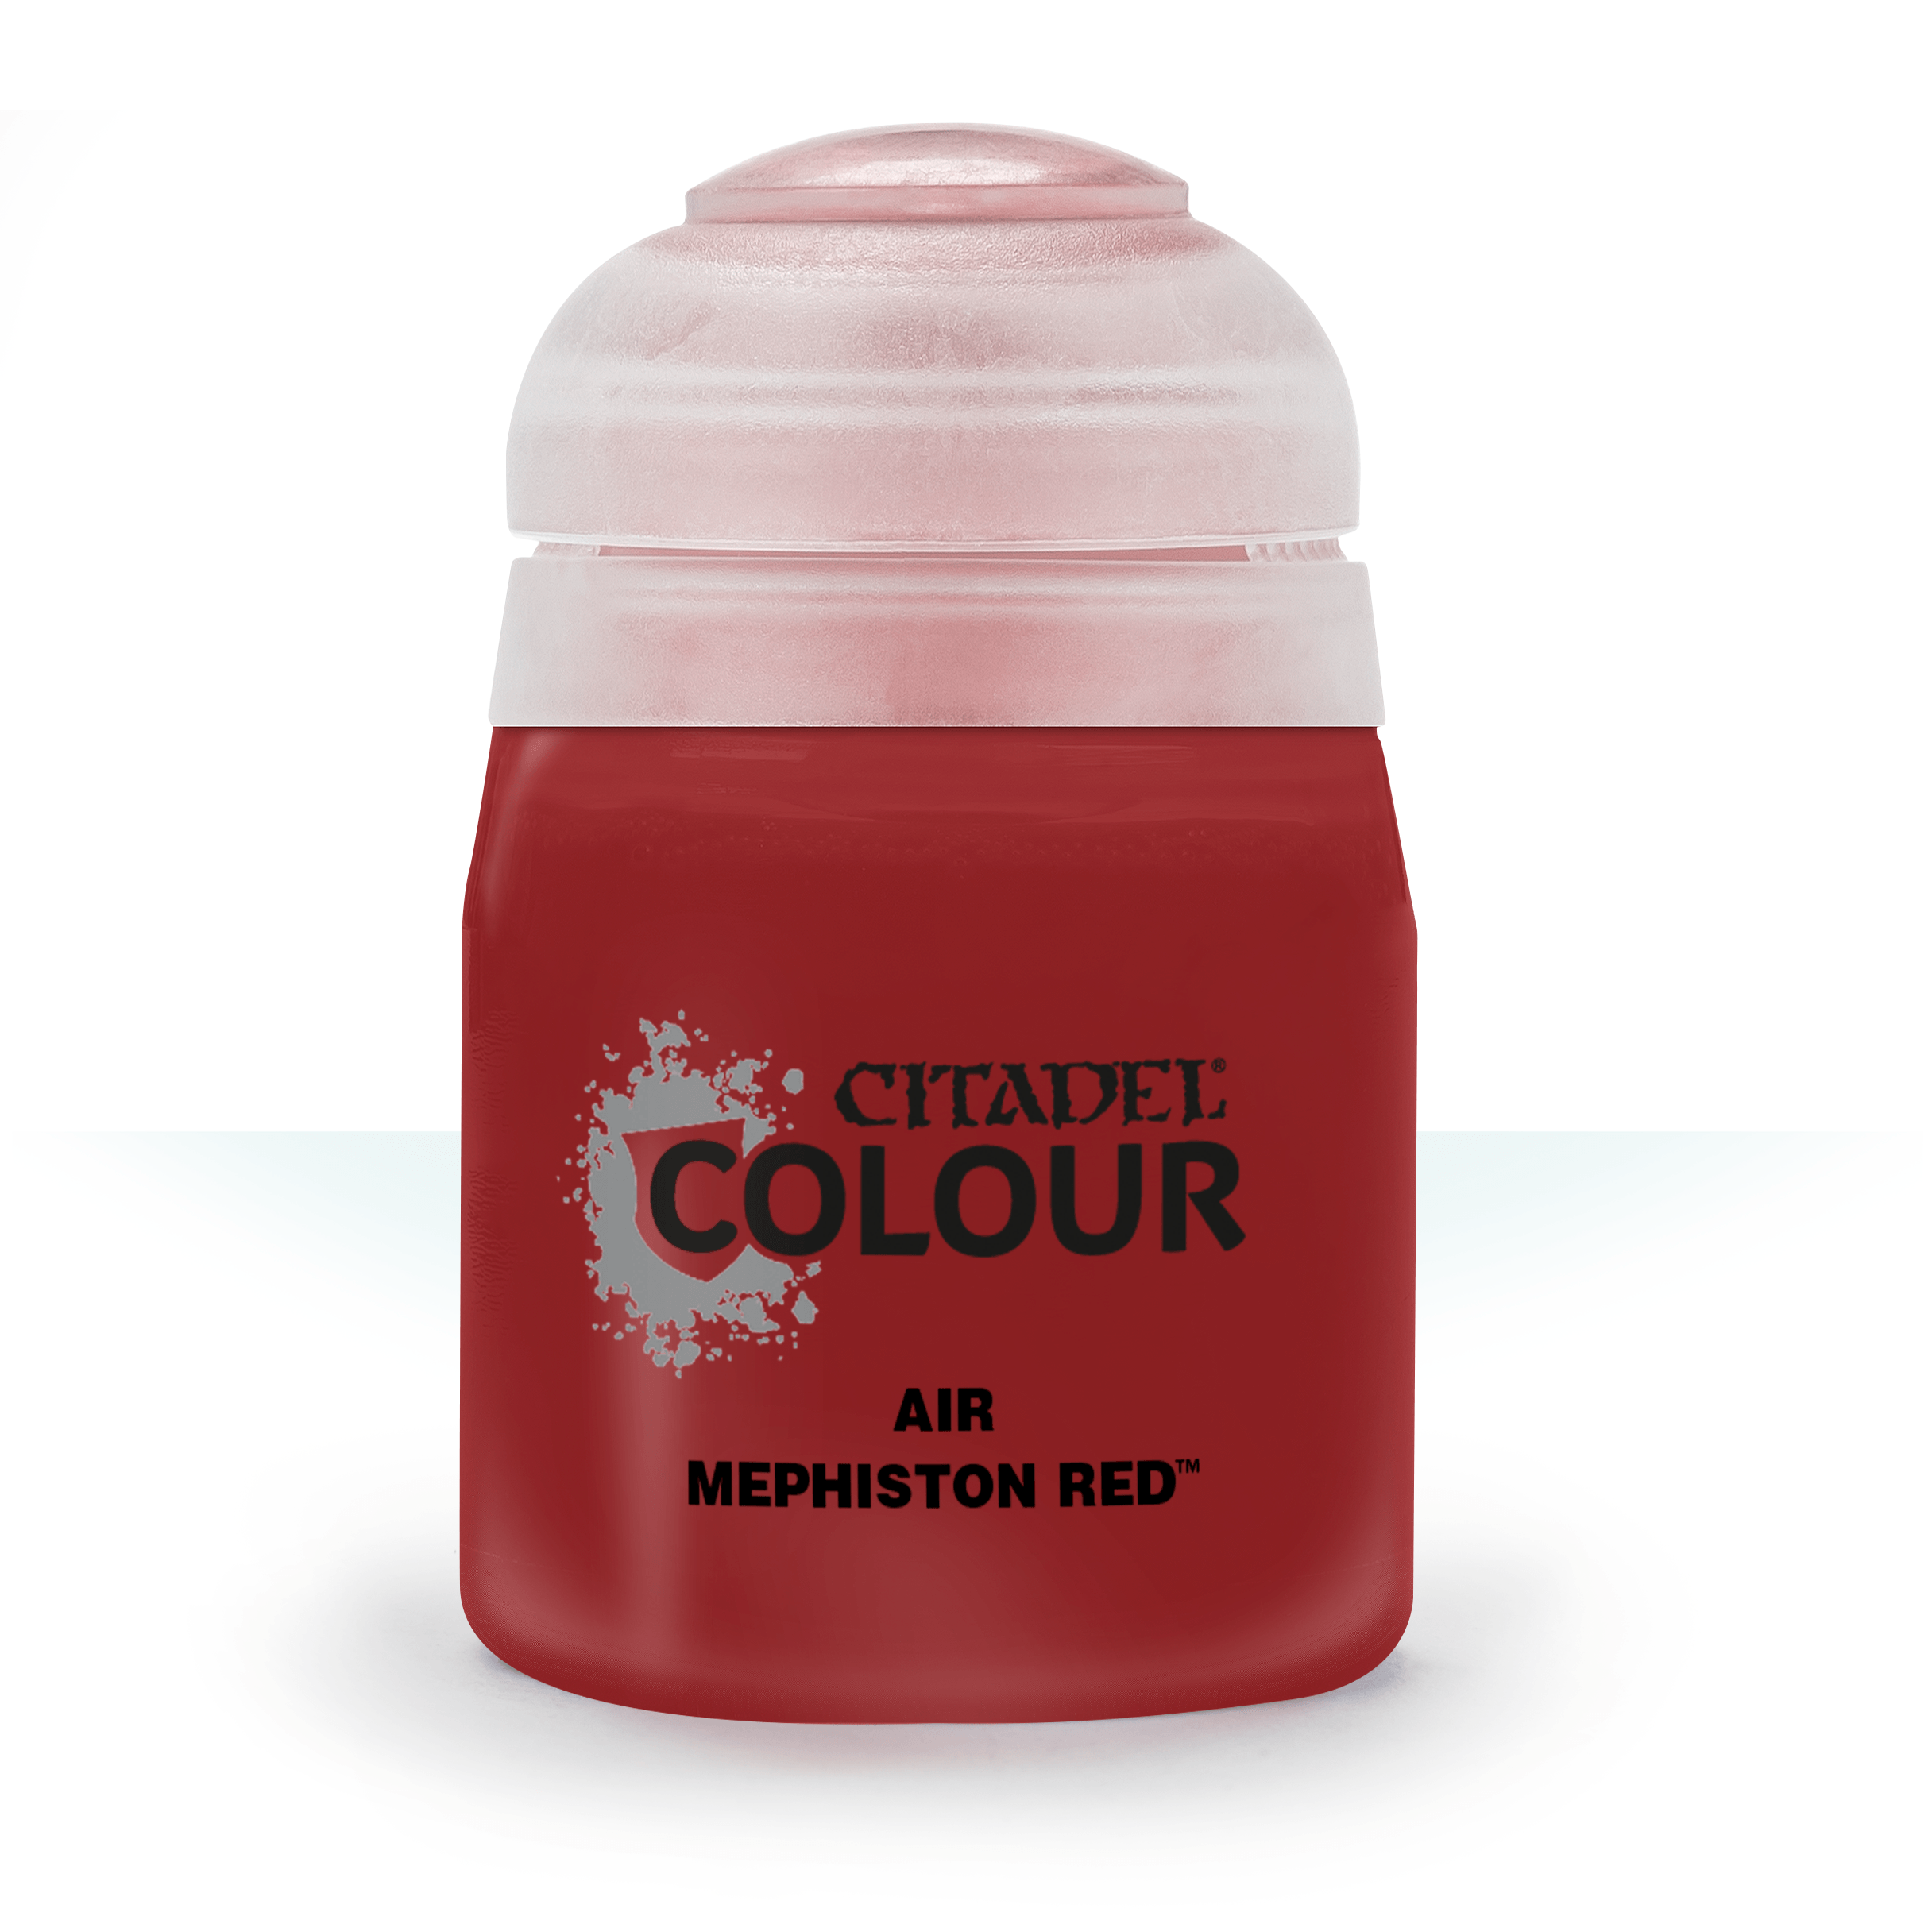 Citadel Airbrush Paints: Mephiston Red Air (24ML)